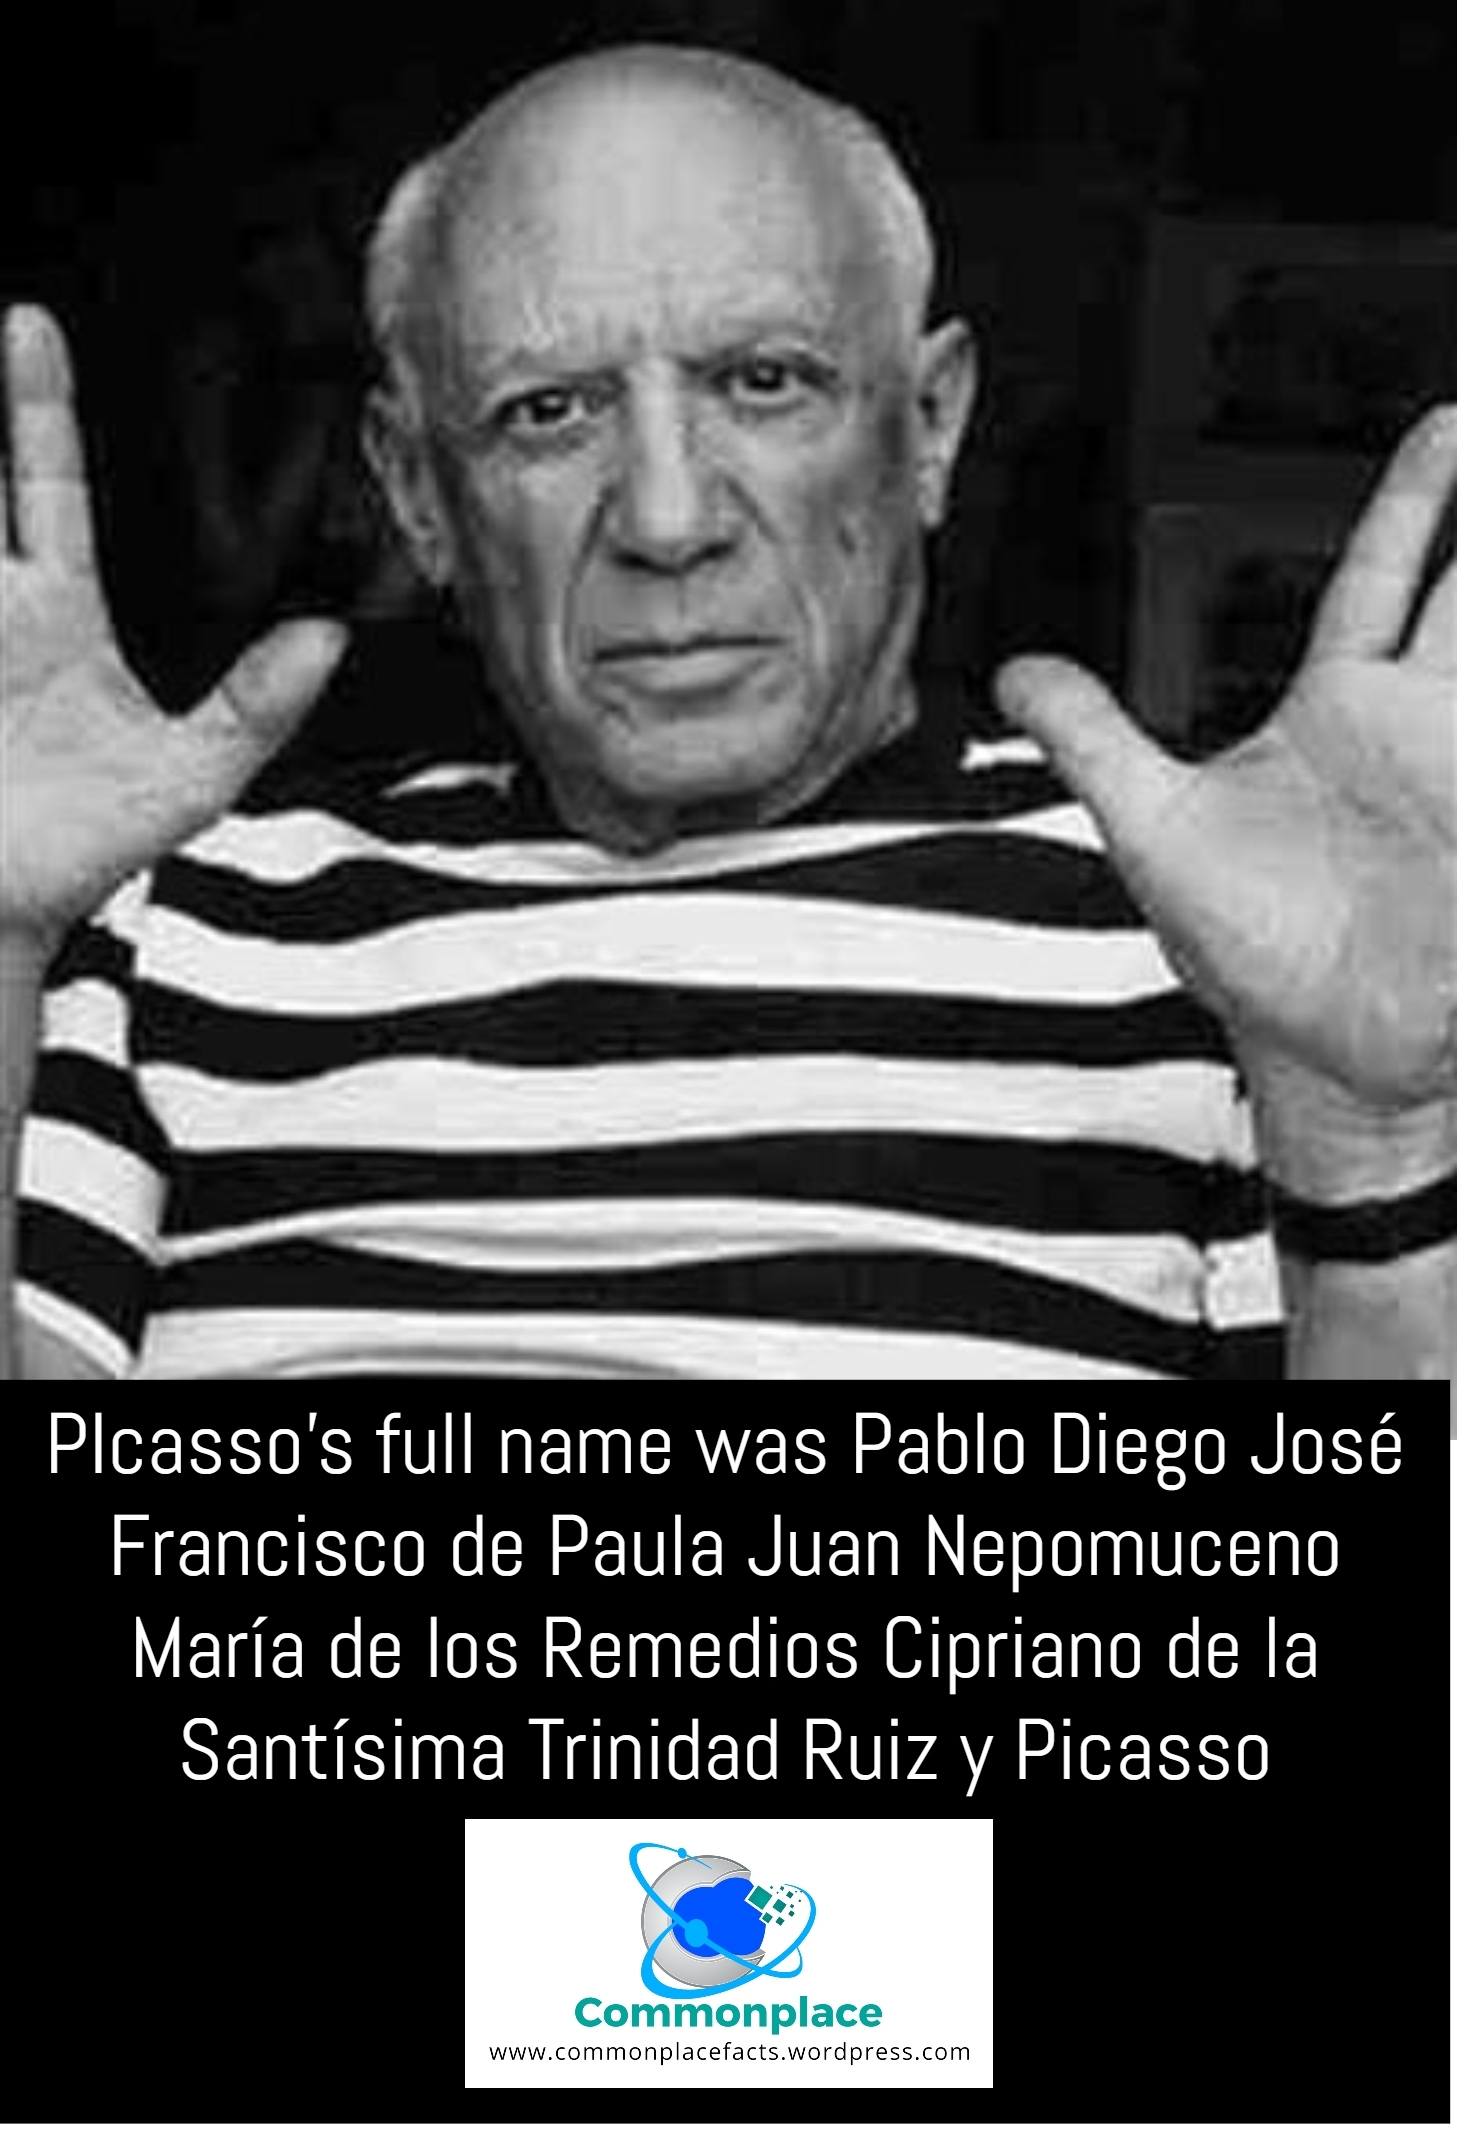 #picasso #names #longNames #artists